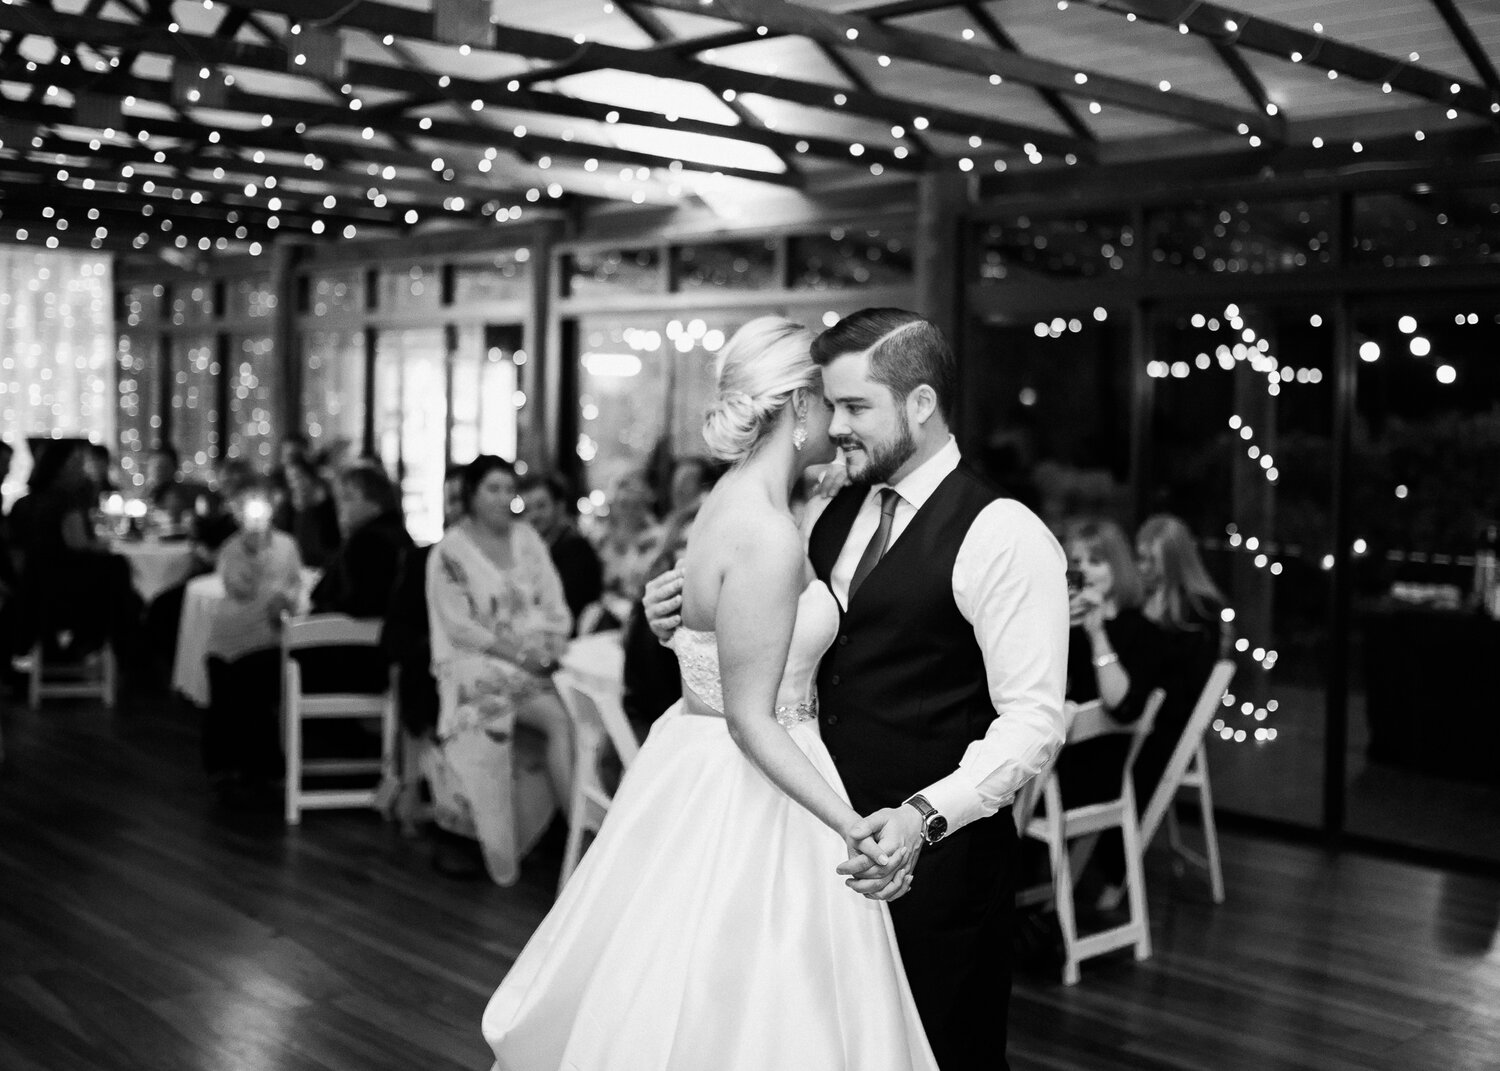 Bonnie and Tom in a world of their own during their first dance at their wedding in Brisbane.